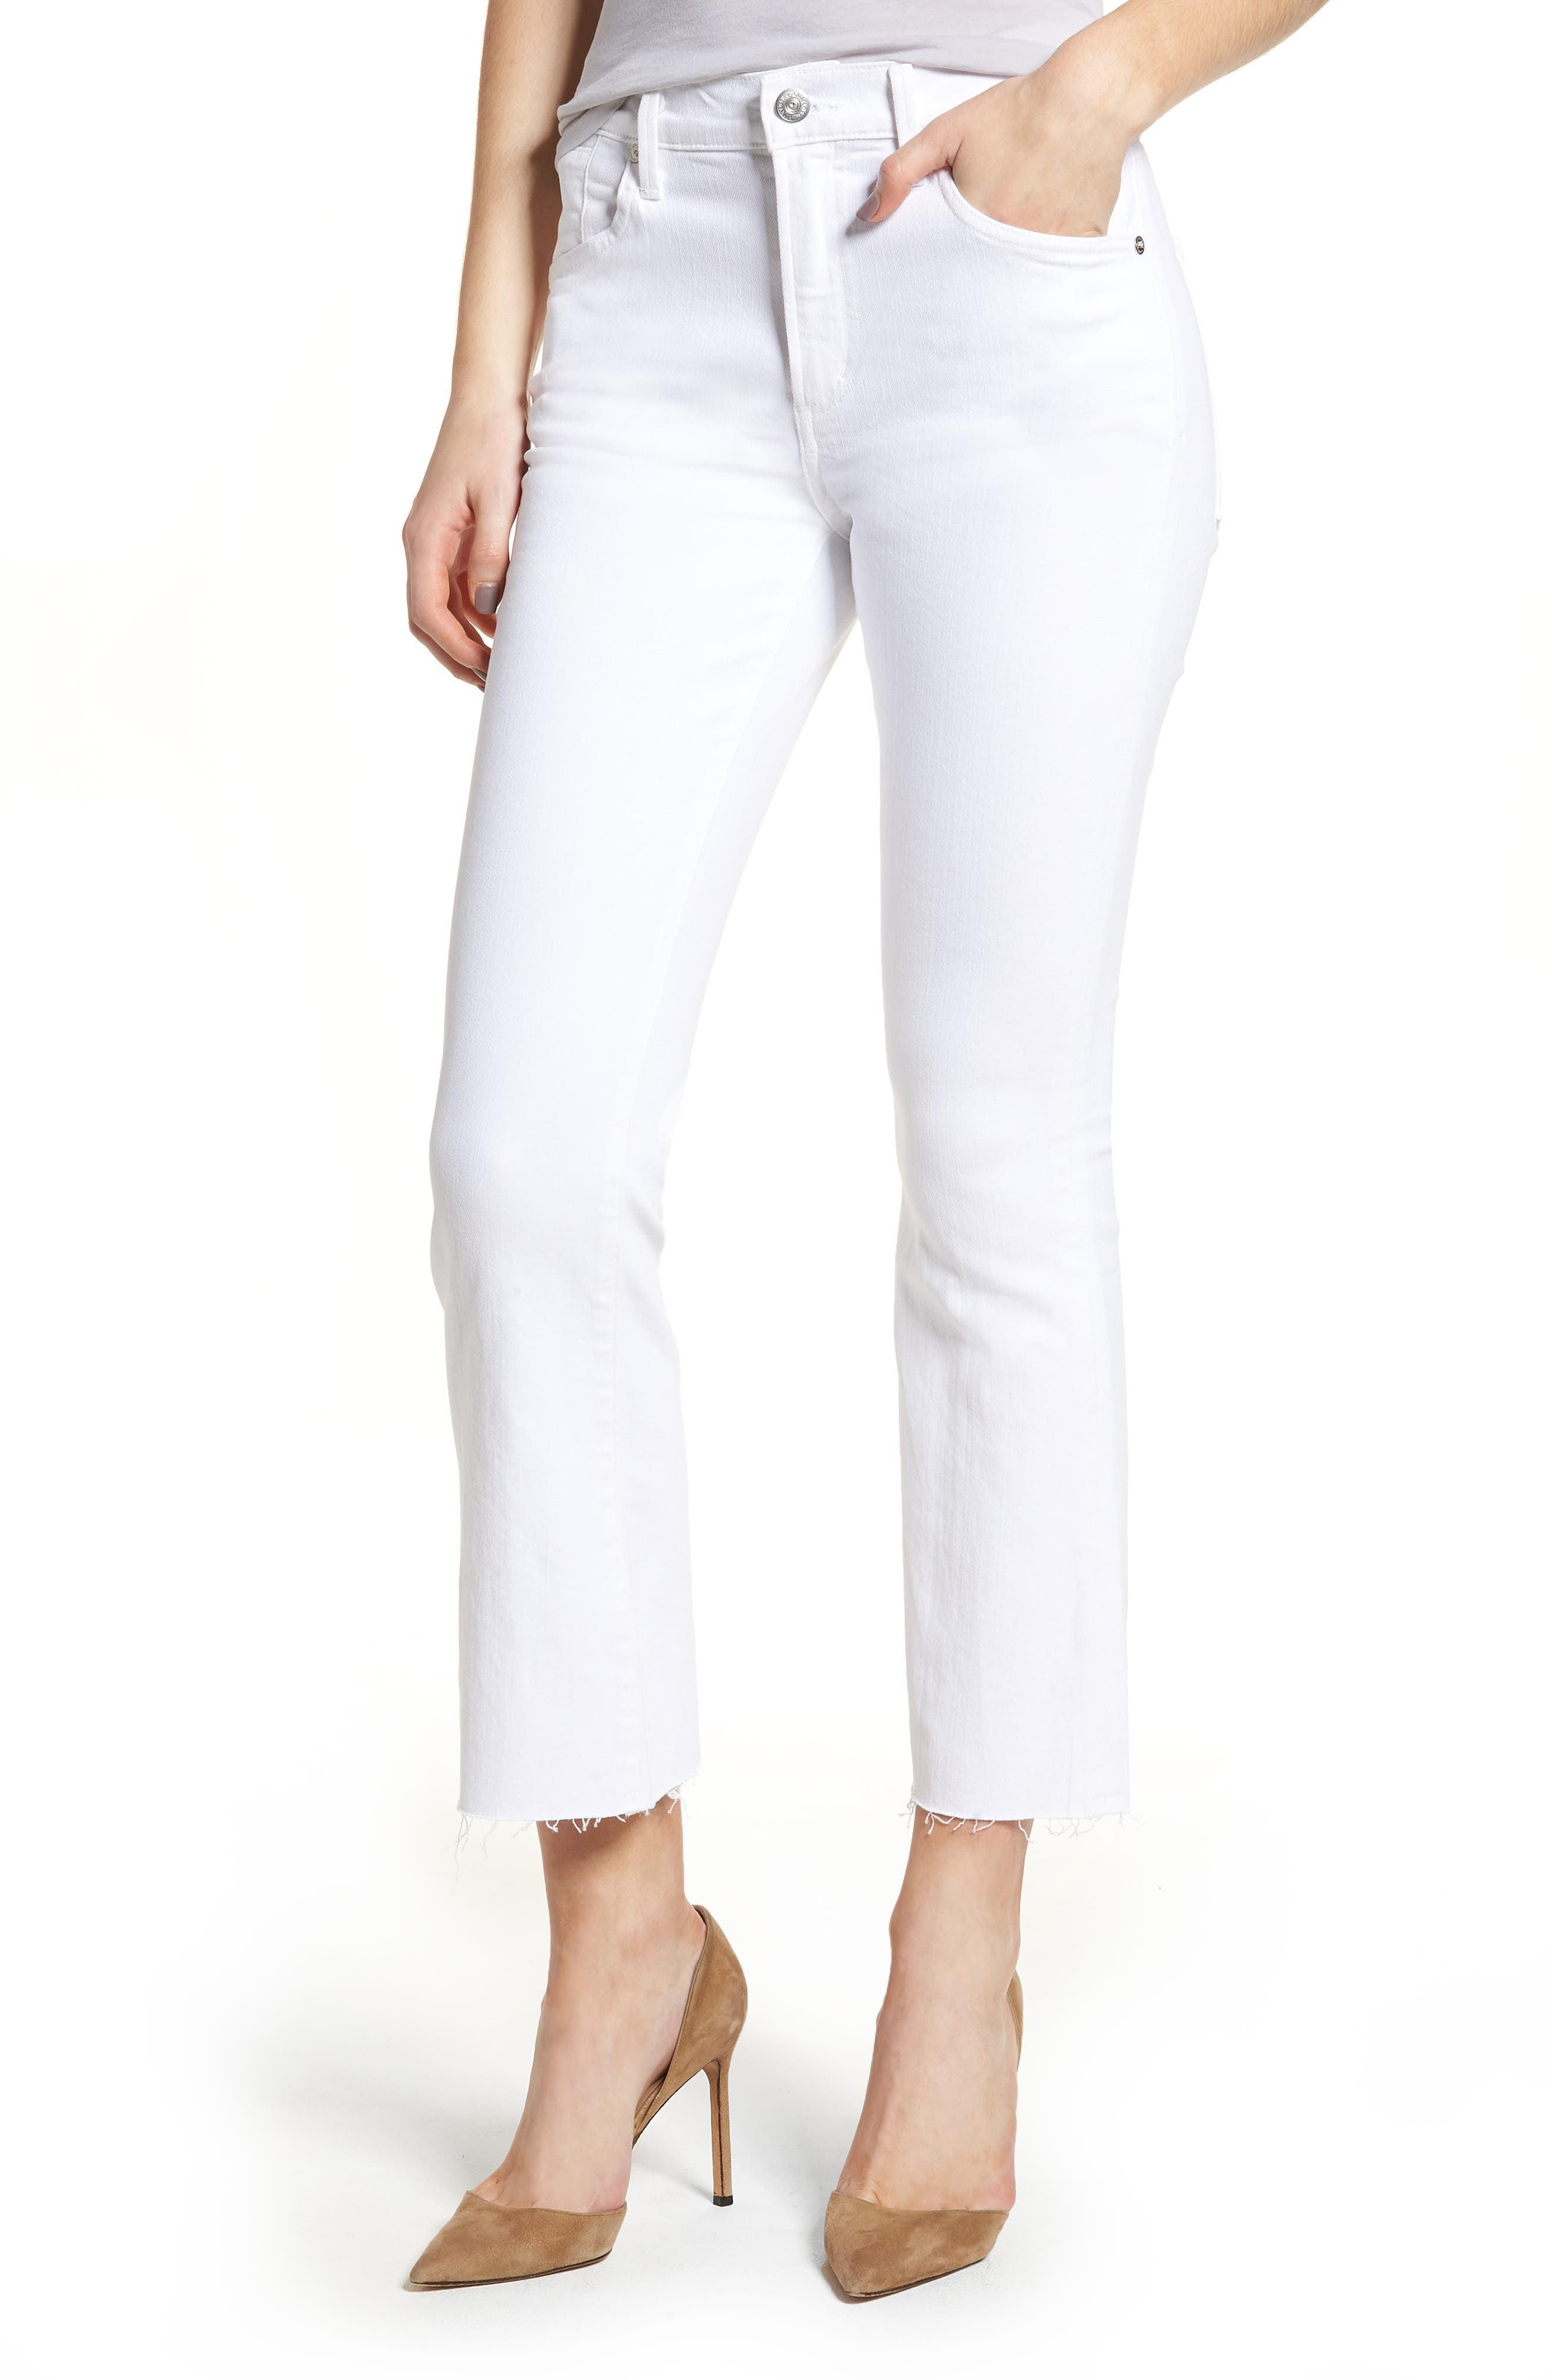 CITIZENS OF HUMANITY,                             Fleetwood Crop Straight Leg Jeans,                             Main thumbnail 1, color,                             104